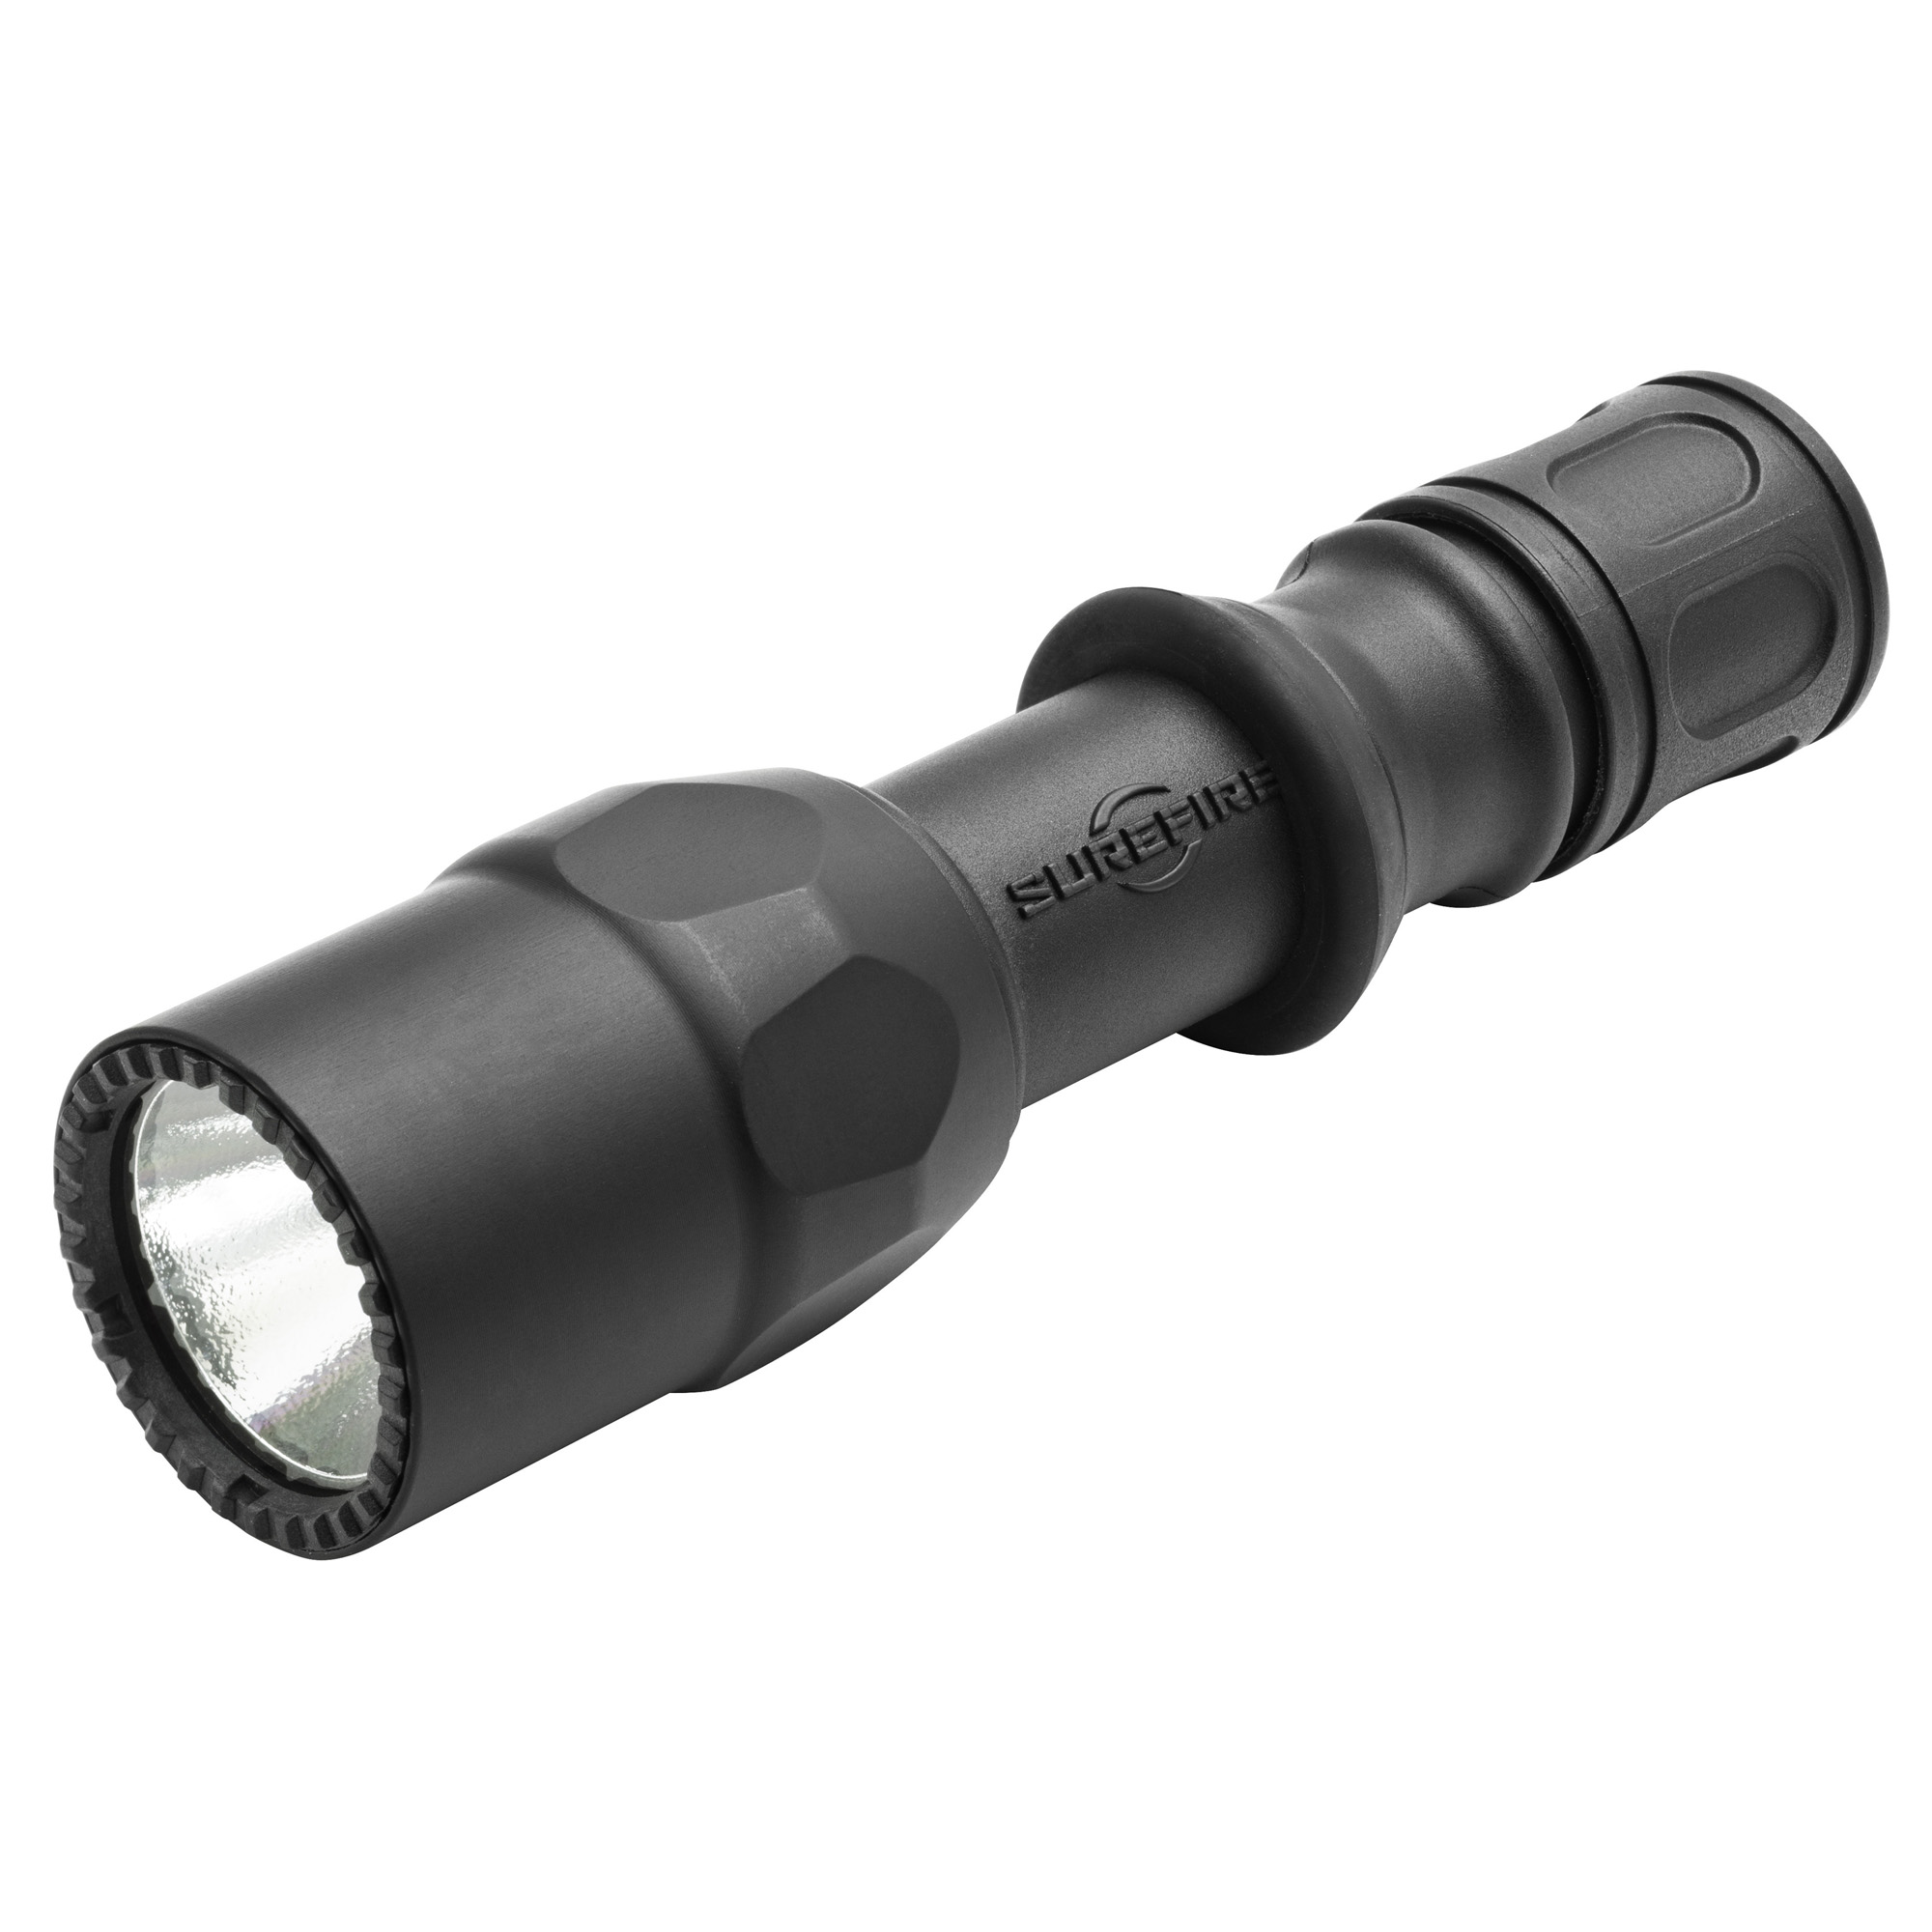 """The single-output G2ZX"""" designed and built specifically for tactical use"""" produces 600 lumens of brilliant white light from a high-performance LED that is virtually immune to failure since there's no filament to burn out or break. It uses a micro-textured polycarbonate reflector to create a smooth beam with optimal light distribution-excellent reach combined with significant surround beam for peripheral vision. The G2ZX bezel is matte-black Mil-Spec hard-anodized aerospace aluminum and the body is tough"""" corrosion-proof Nitrolon(R) polymer"""" both providing superior scratch"""" corrosion"""" and abrasion resistance. The Combat Grip design-reduced-diameter mid-section and rubber grip ring-is perfect for flashlight/handgun techniques and also provides a secure hold even with wet"""" cold"""" or gloved hands. Features ergonomic tactical switching-press the tail cap switch for momentary-on"""" twist the tail cap for constant-on."""